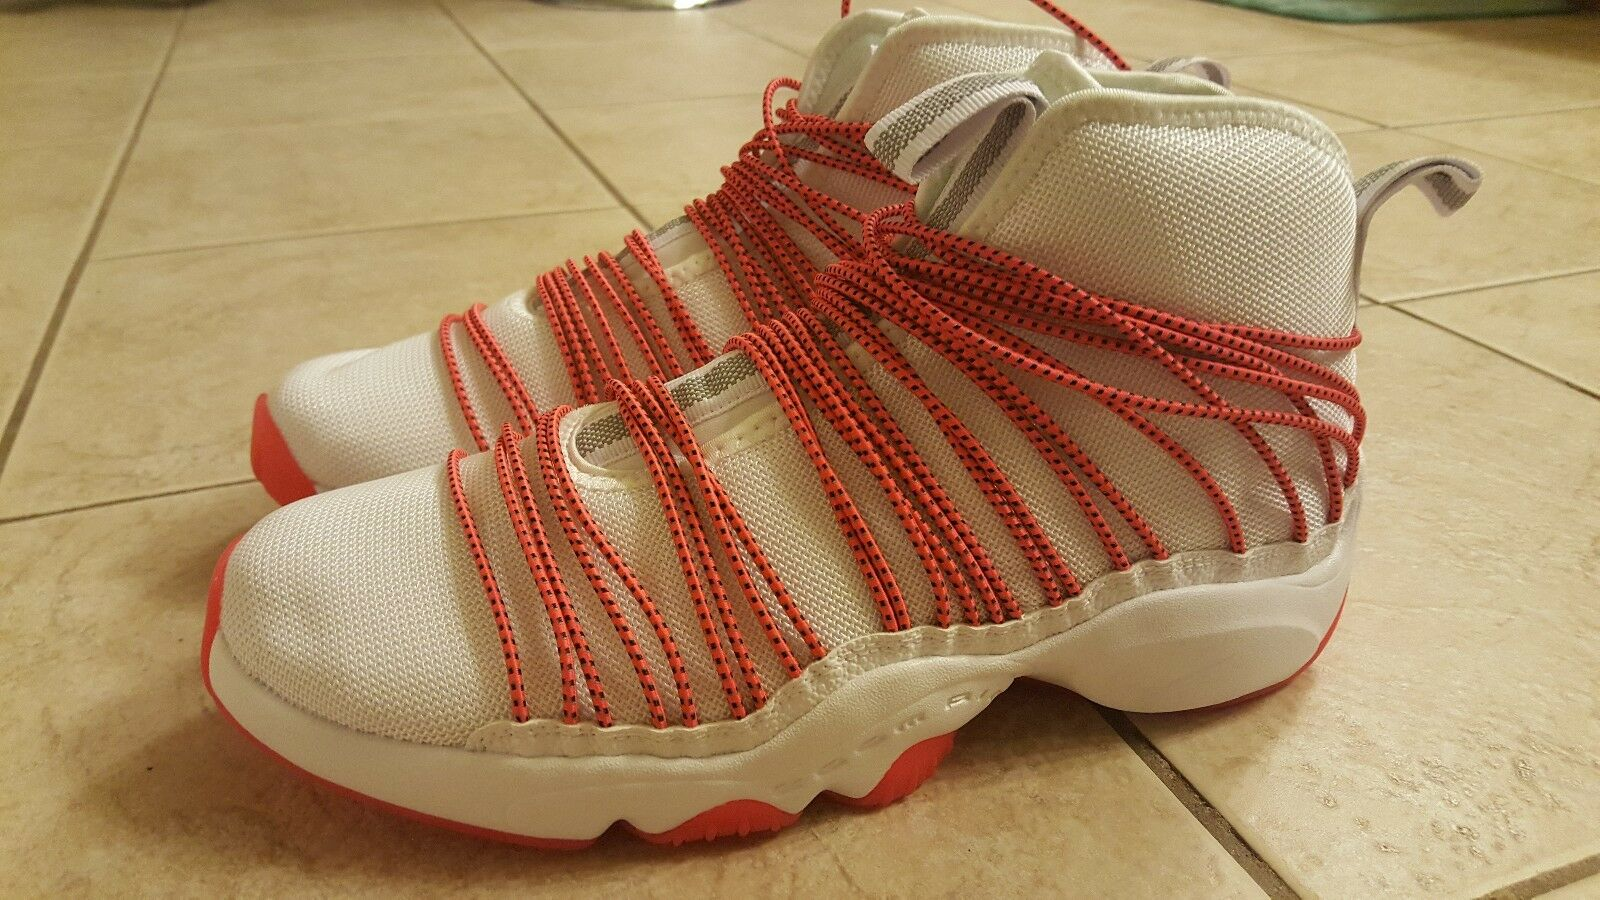 Brand New Nike Air Zoom Cabos Sneakers, Men's size 10, White Red, 845058-100